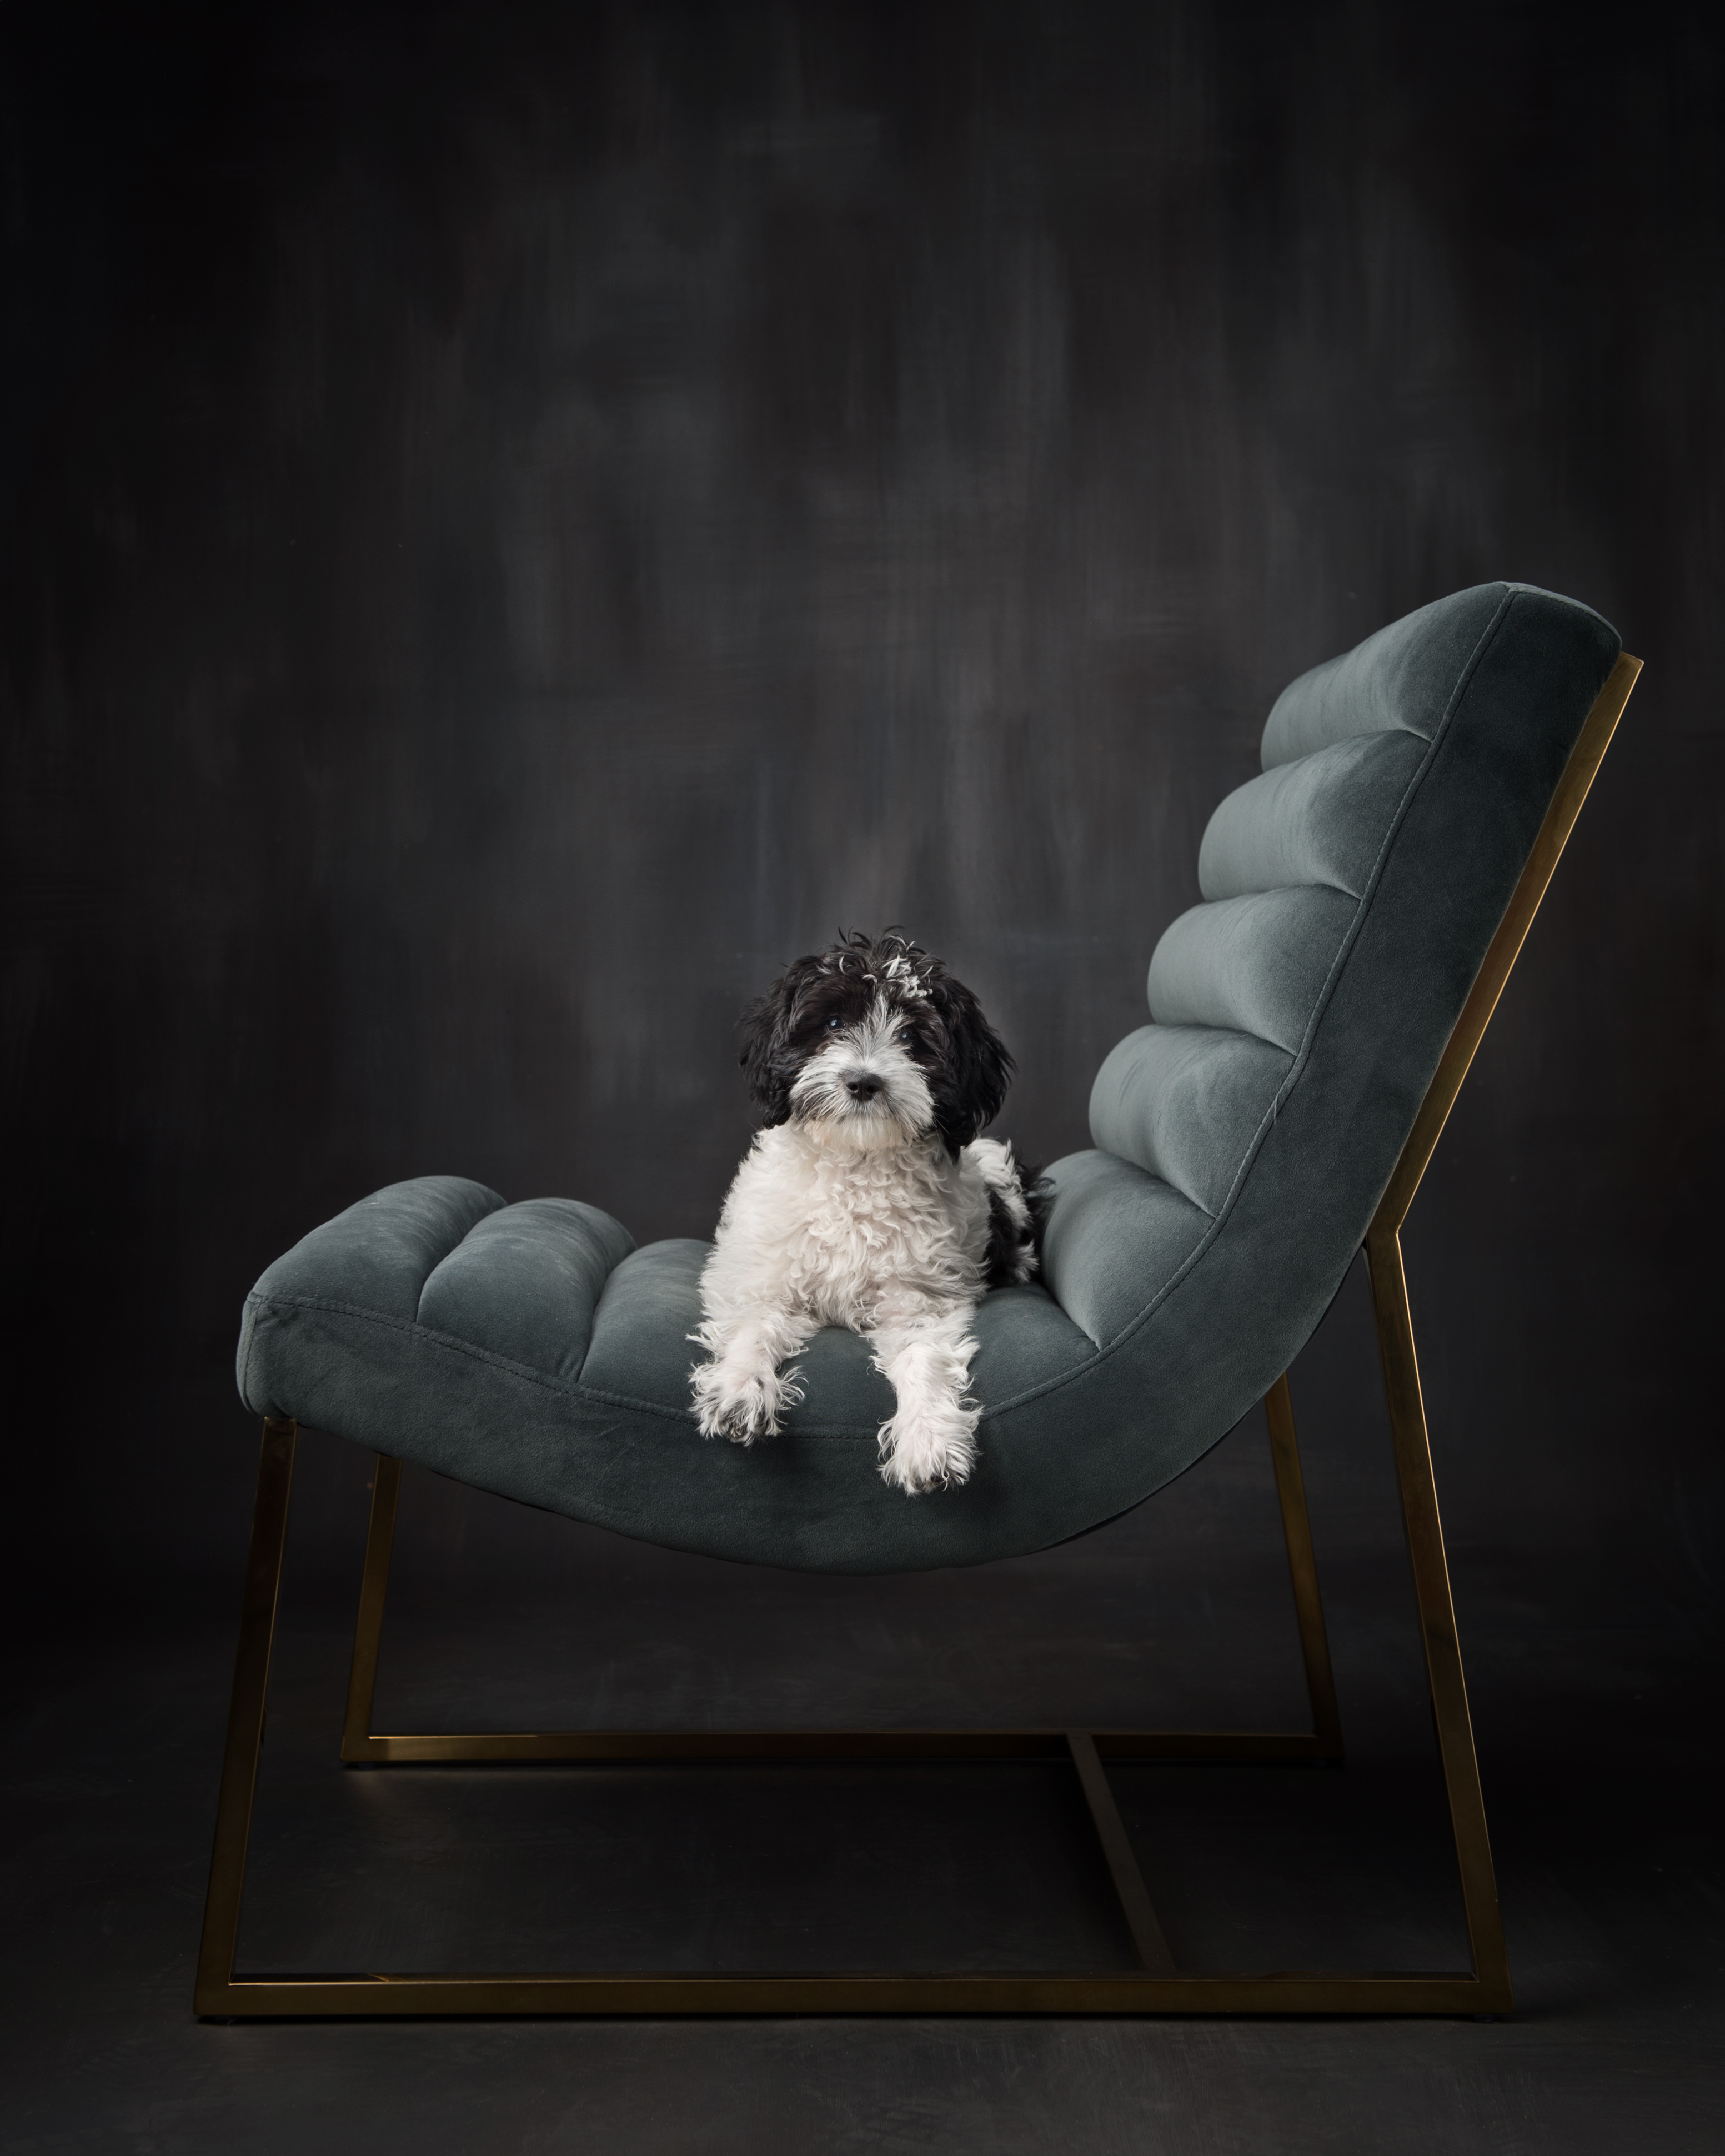 pet photography, dog photography, learn pet photography, labradoodle